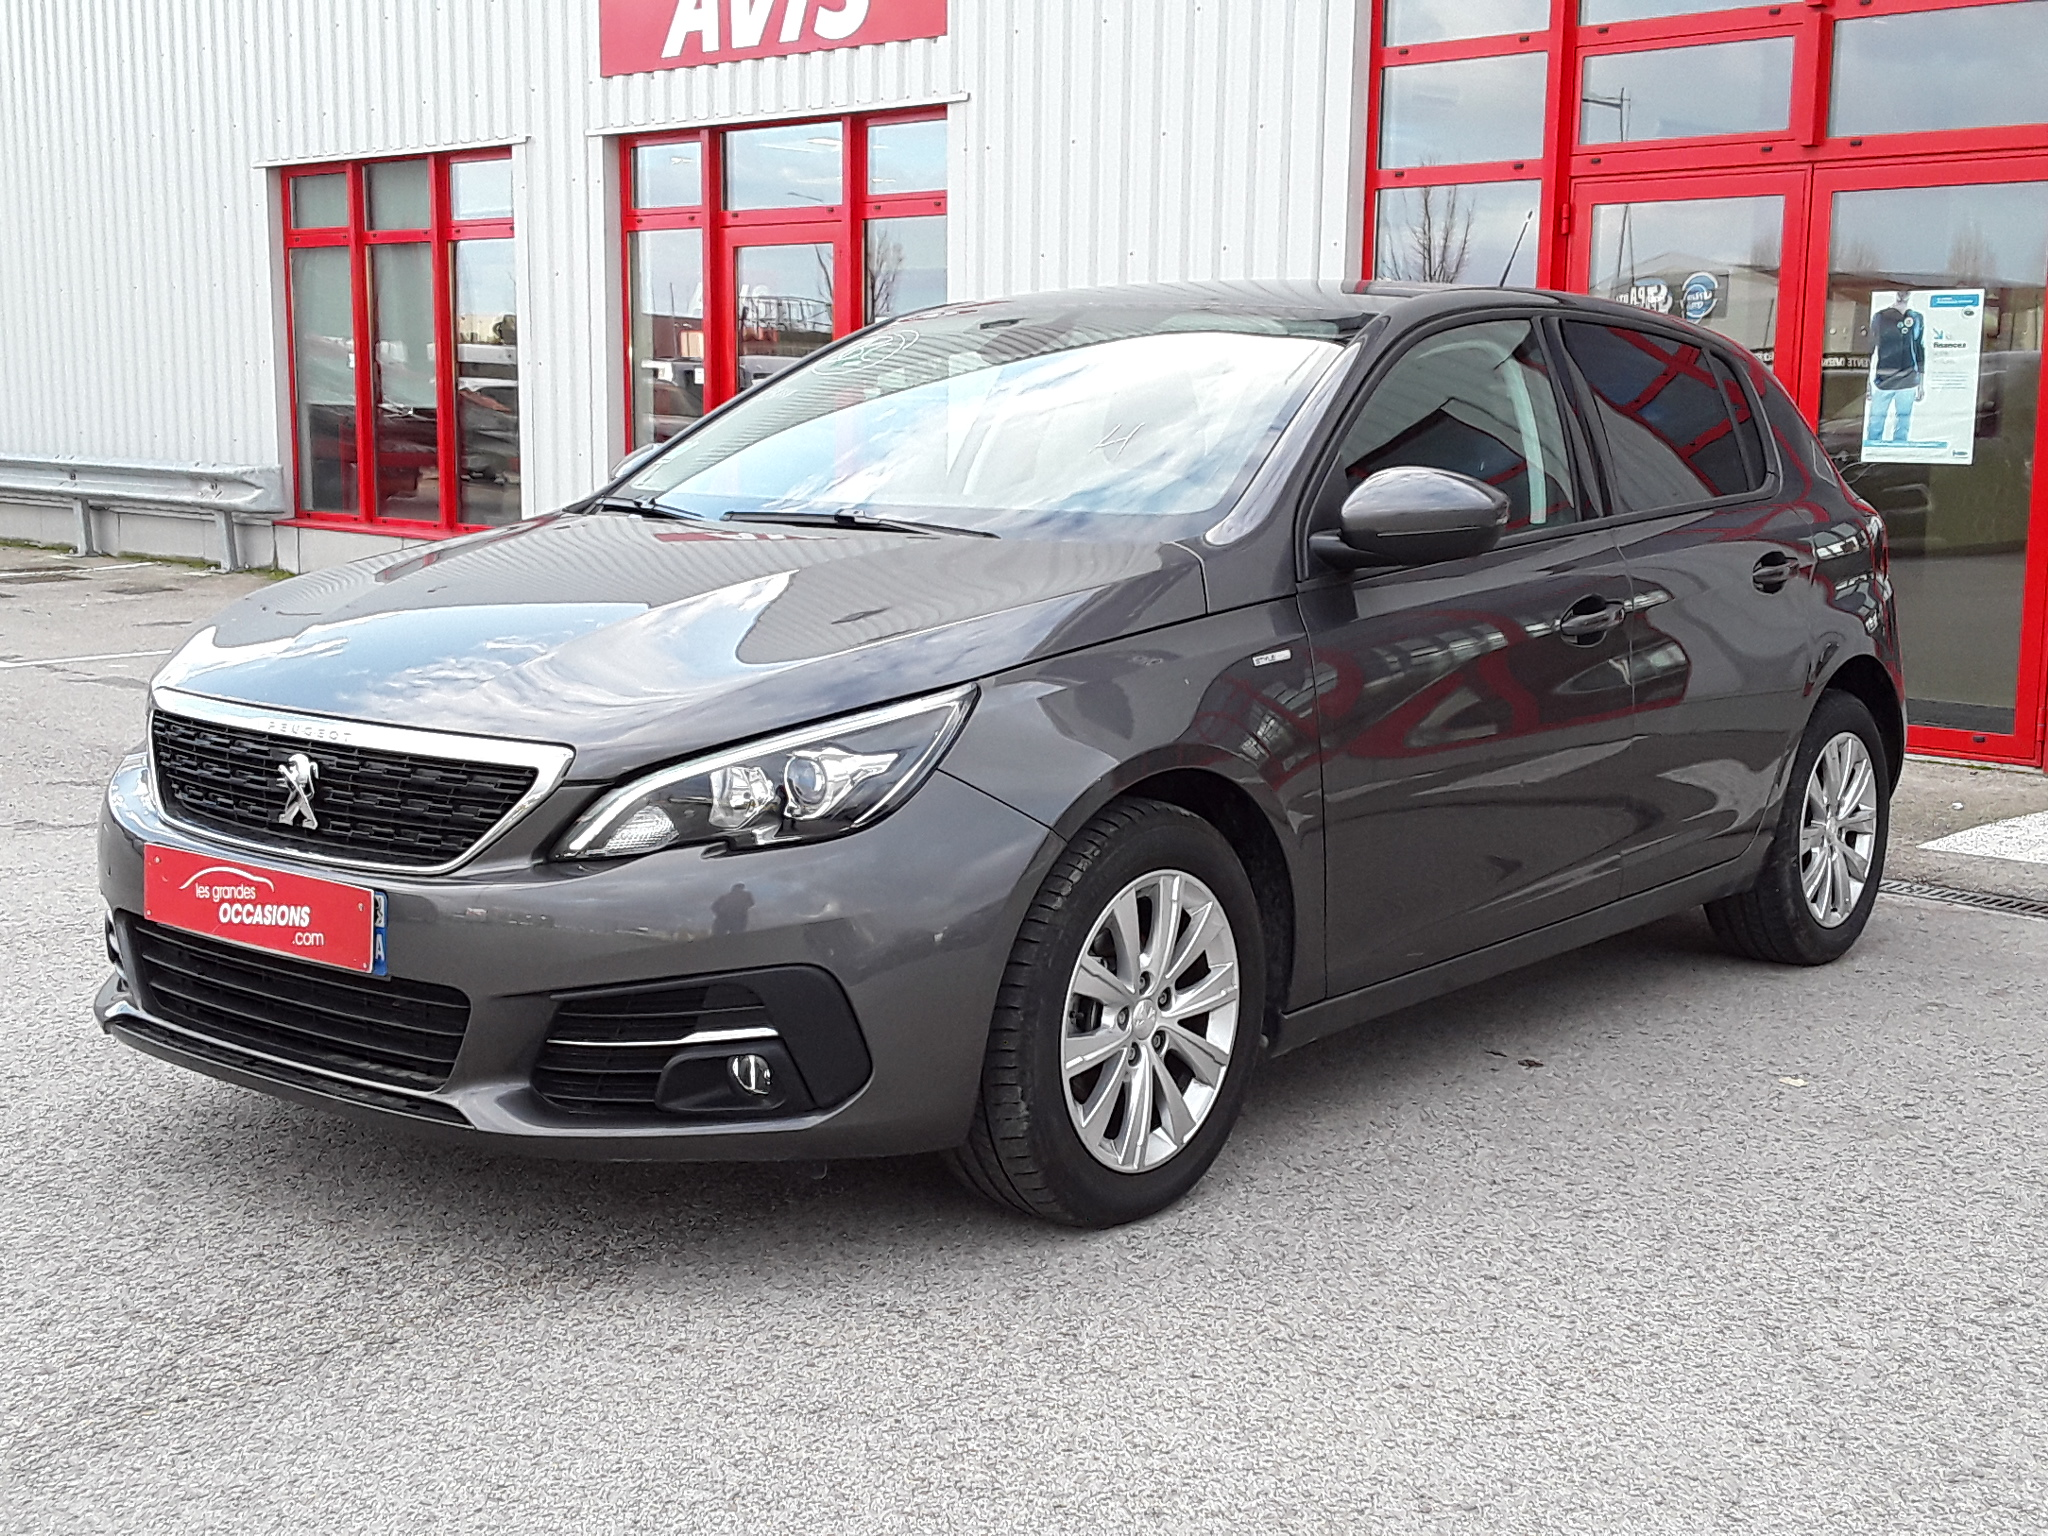 PEUGEOT 308 1.6 BlueHDi 100ch S&S BVM5 Style d'occasion